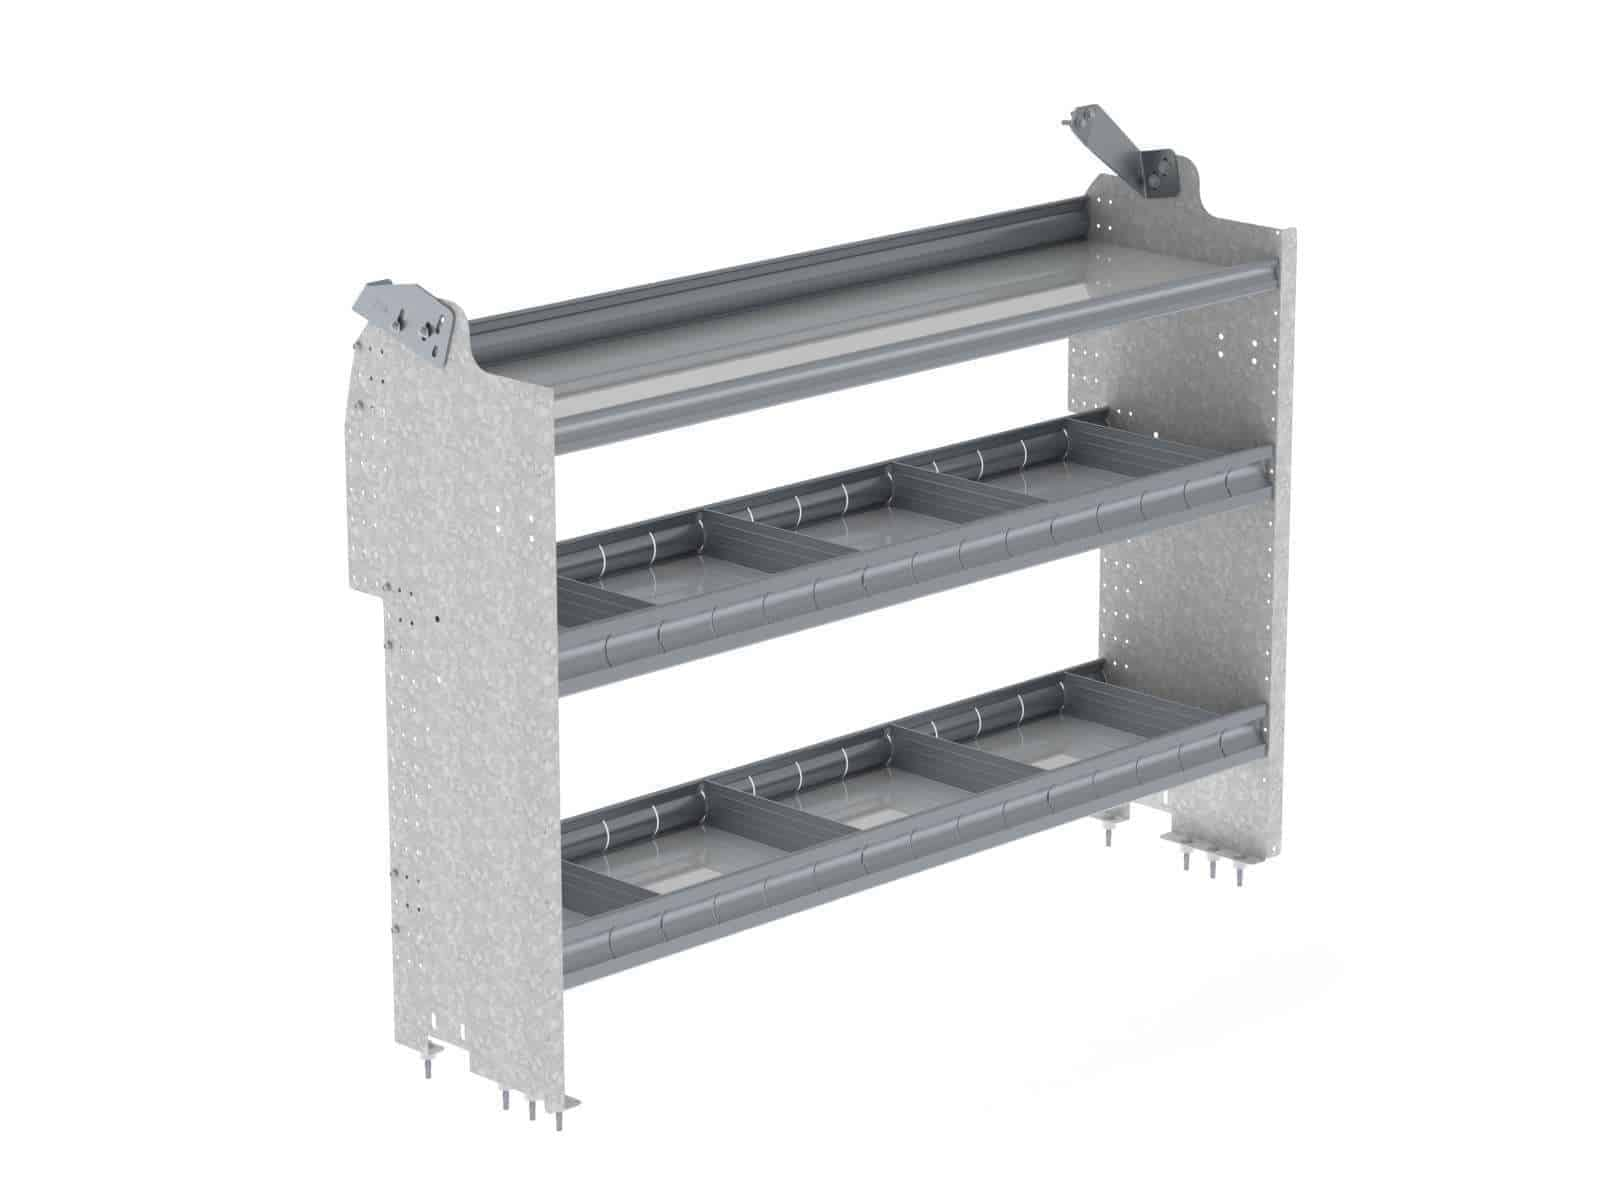 Cargo-Van-Shelving-System-Contoured-Back-Ford-Transit-Connect-F60-F